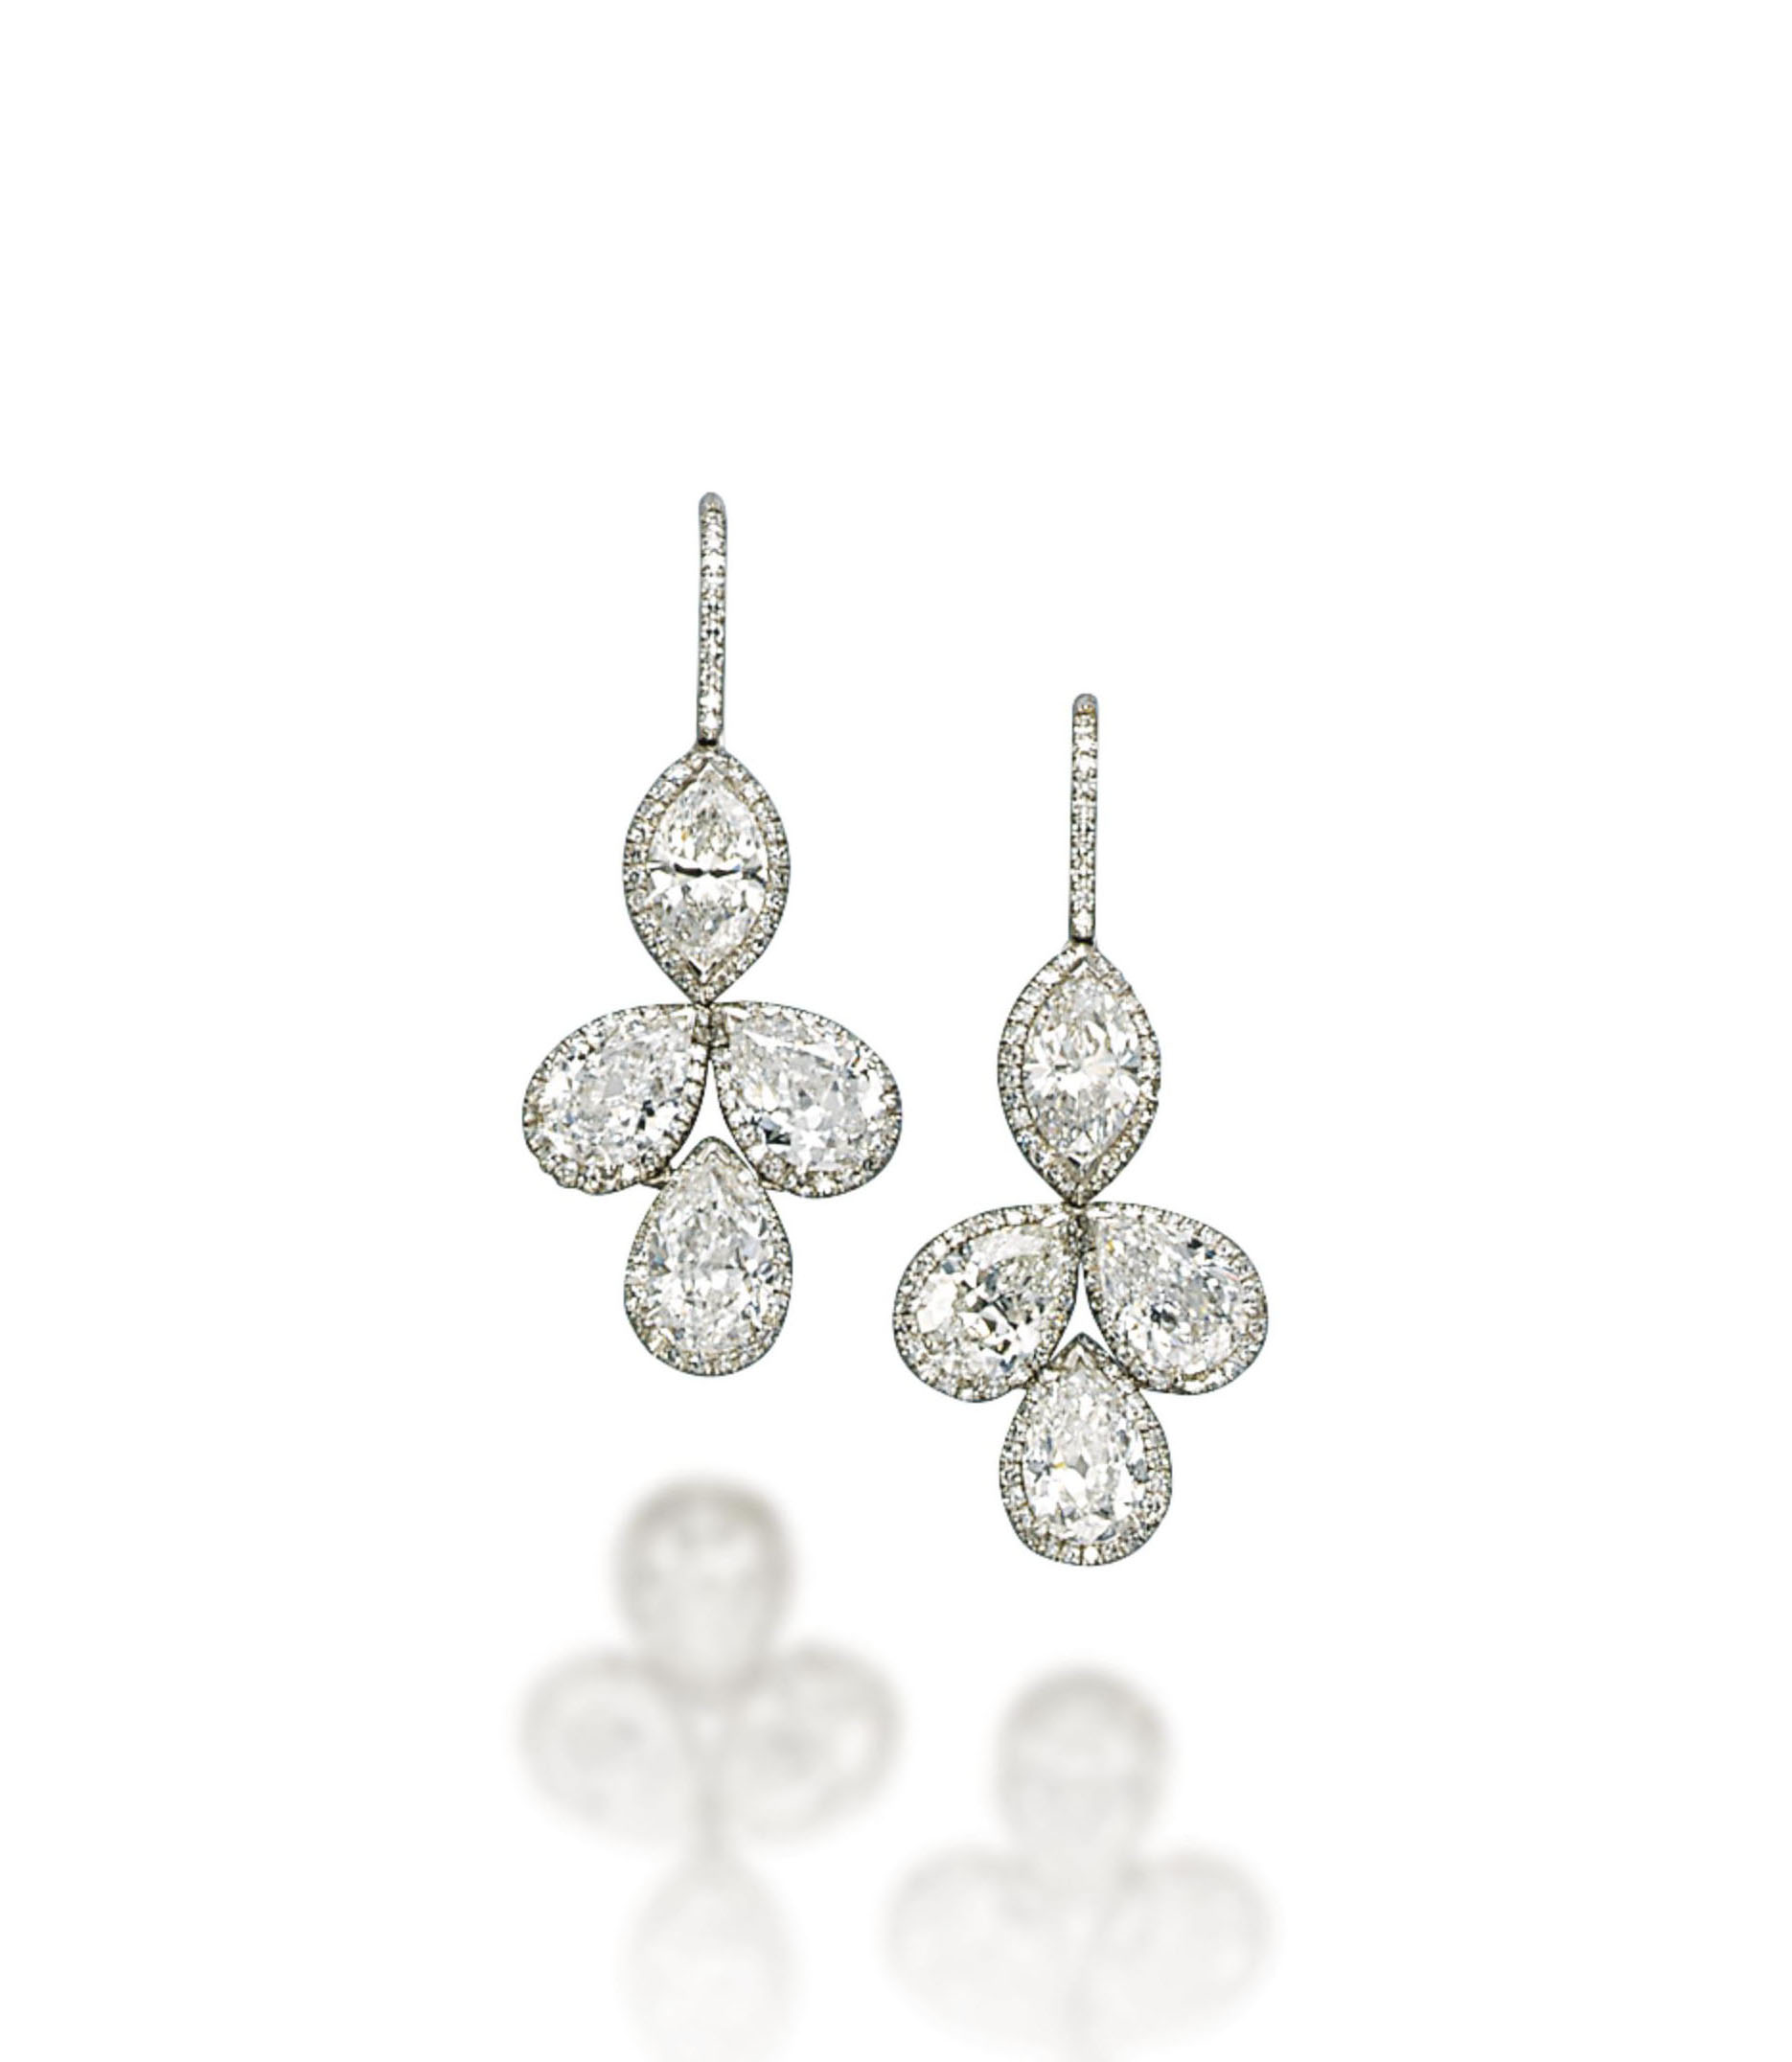 A PAIR OF DIAMOND EAR PENDANTS, BY MANUEL BOUVIER